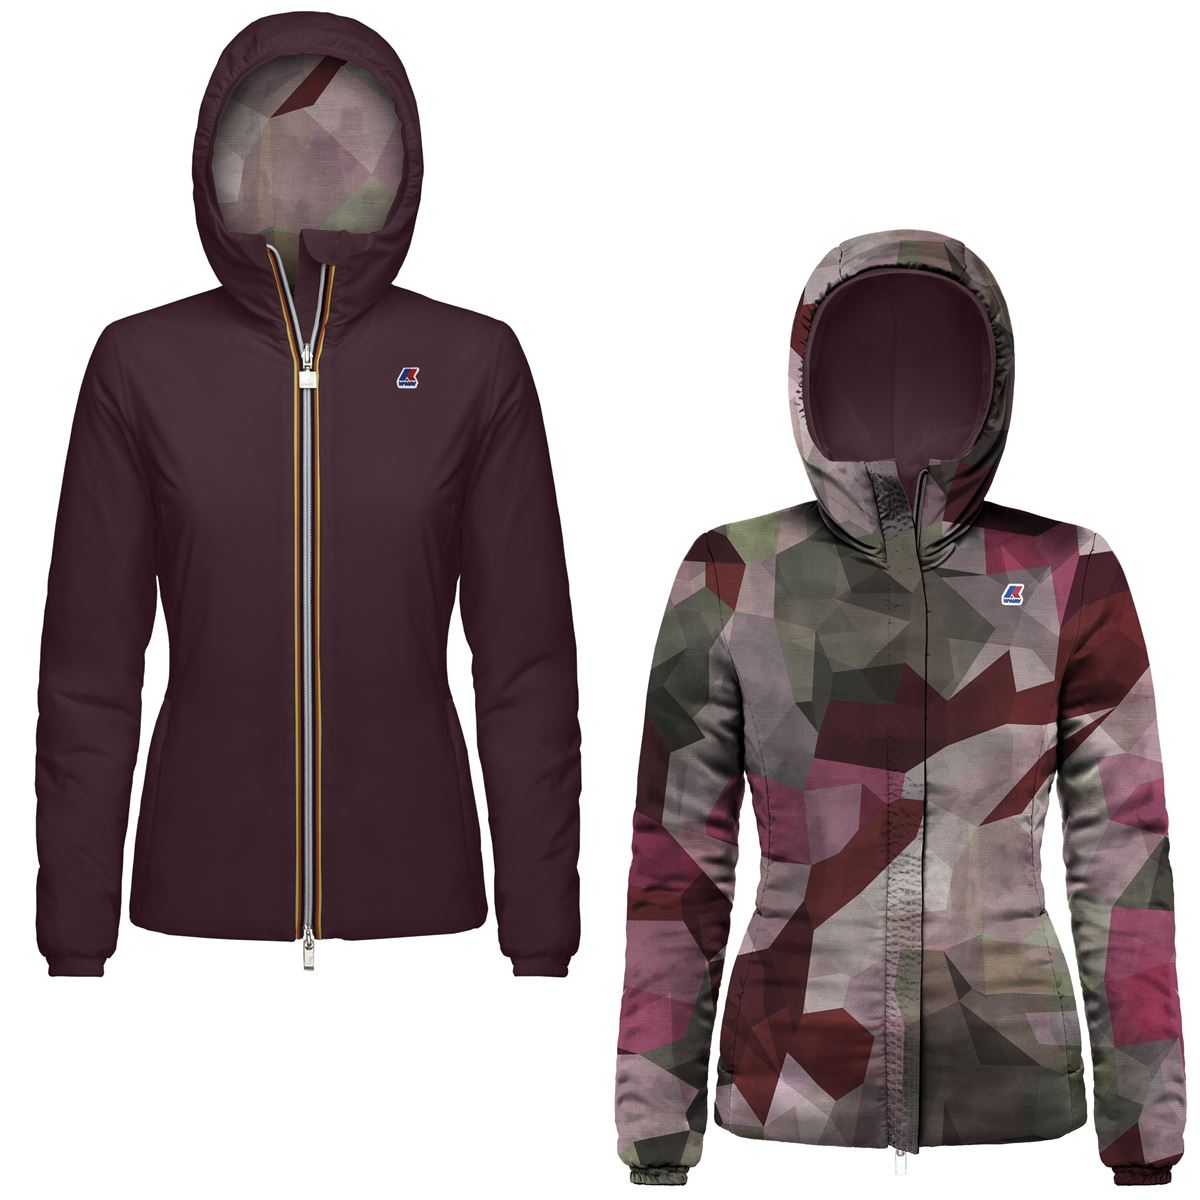 Giubbotto impermeabile K-way donna LILY WARM DOUBLE GRAPHIC-K00A3I0